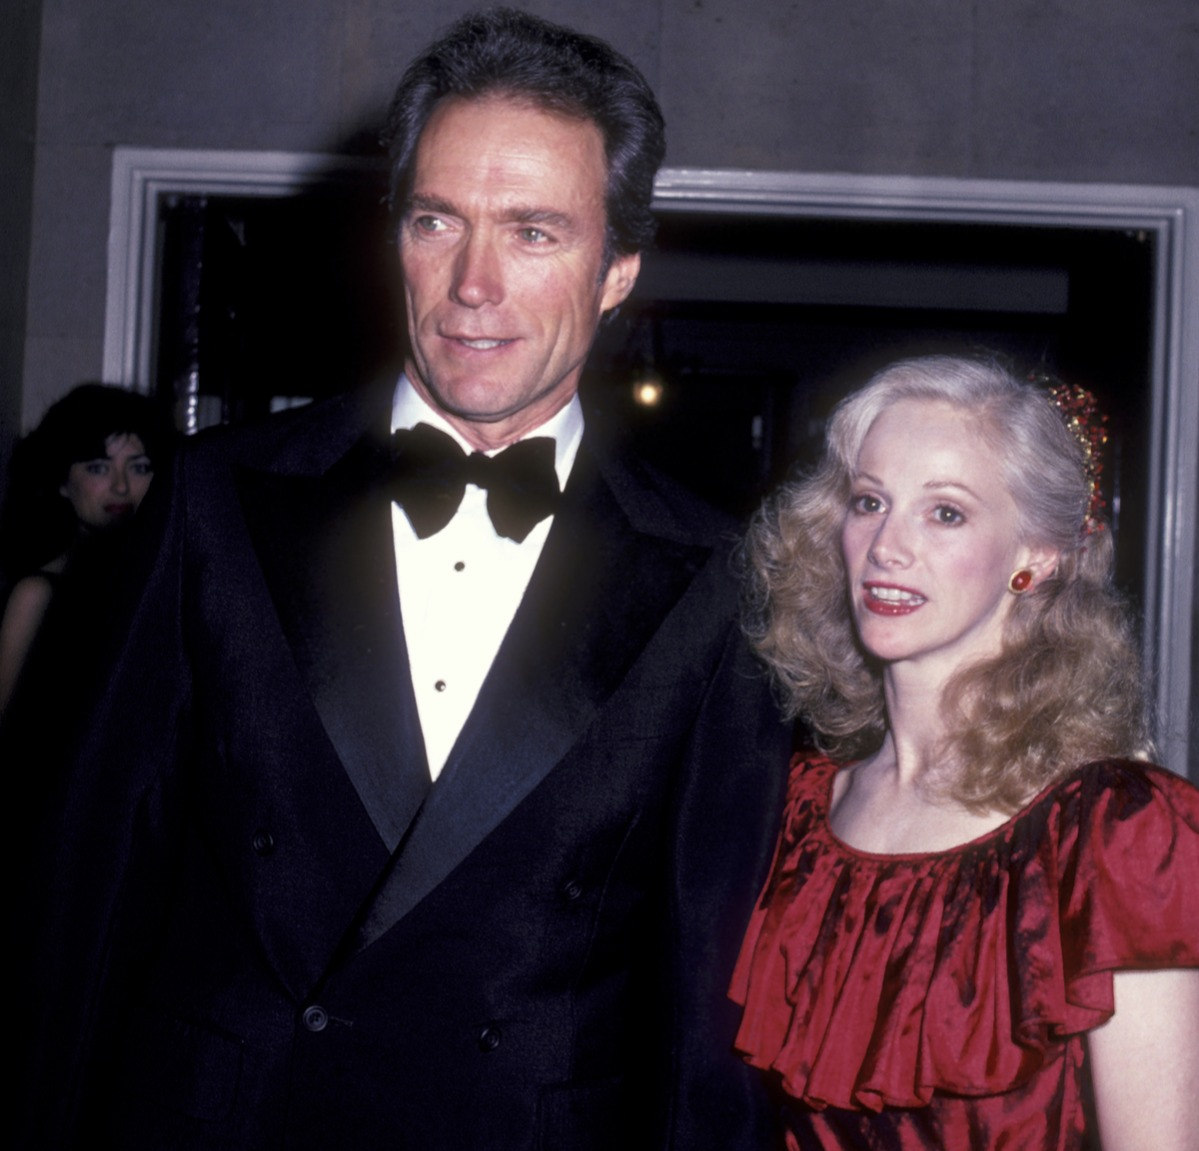 Actor Clint Eastwood and actress Sondra Locke attend the premiere party for 'Firefox' on June 14, 1982 at the Pierre Hotel in New York City.